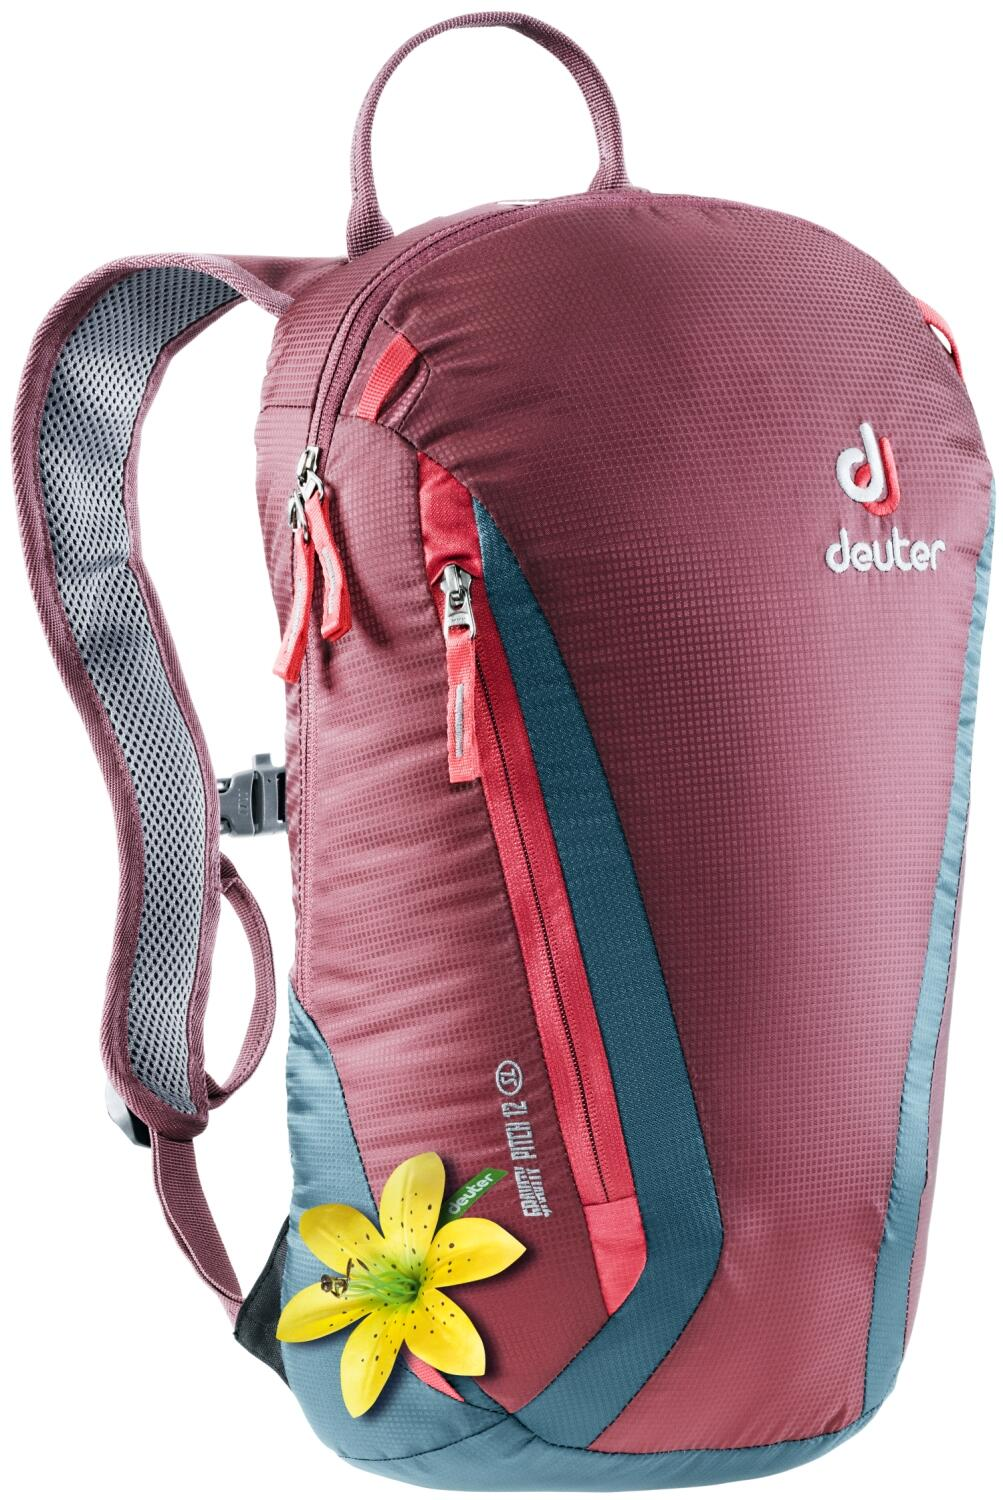 Deuter Gravity Pitch 12 SL Kletterrucksack